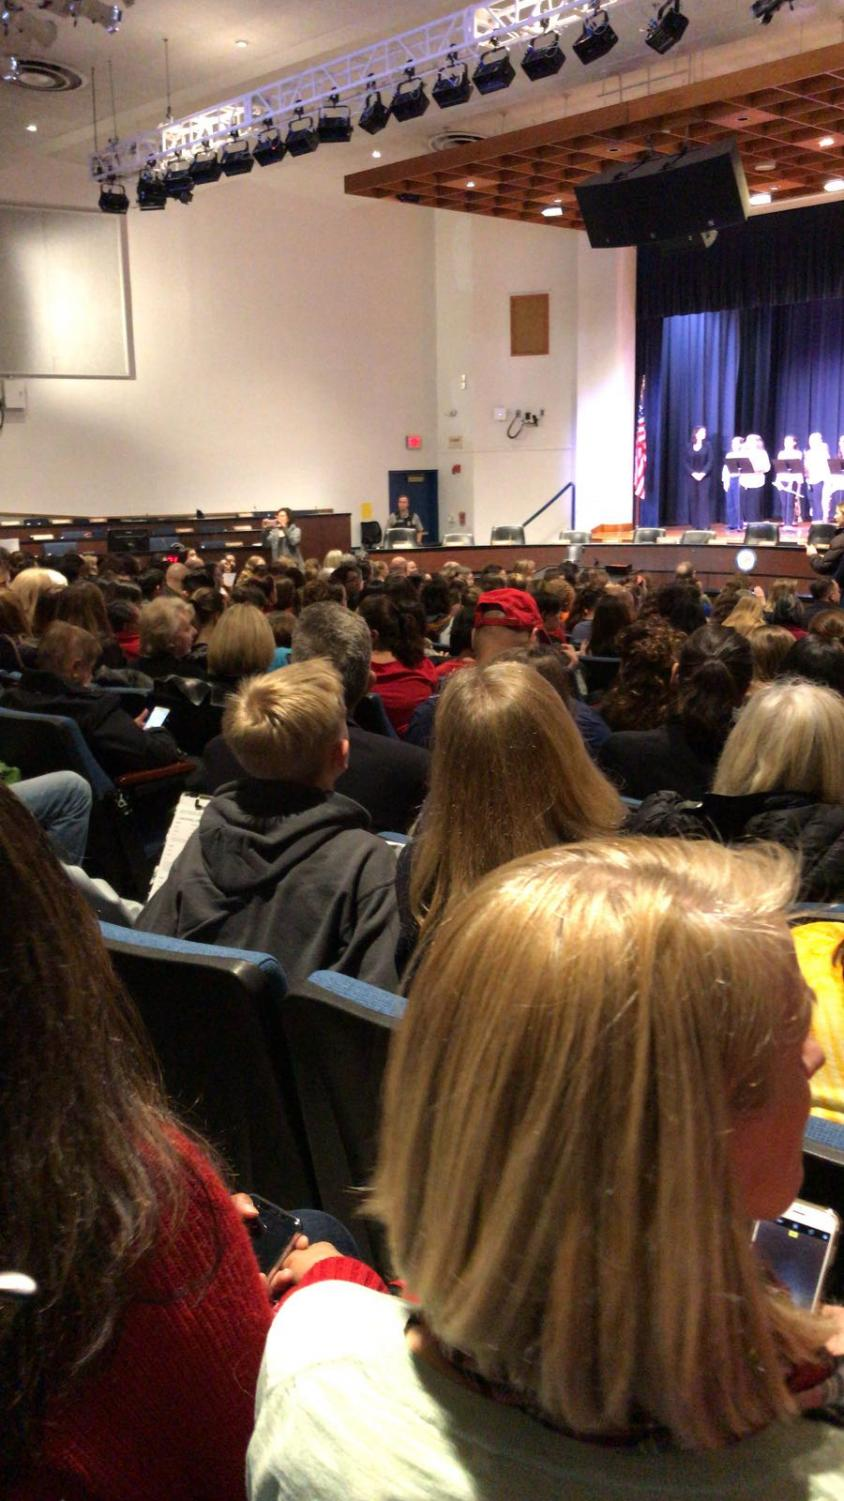 Photo of the crowd taken by H. Drembus